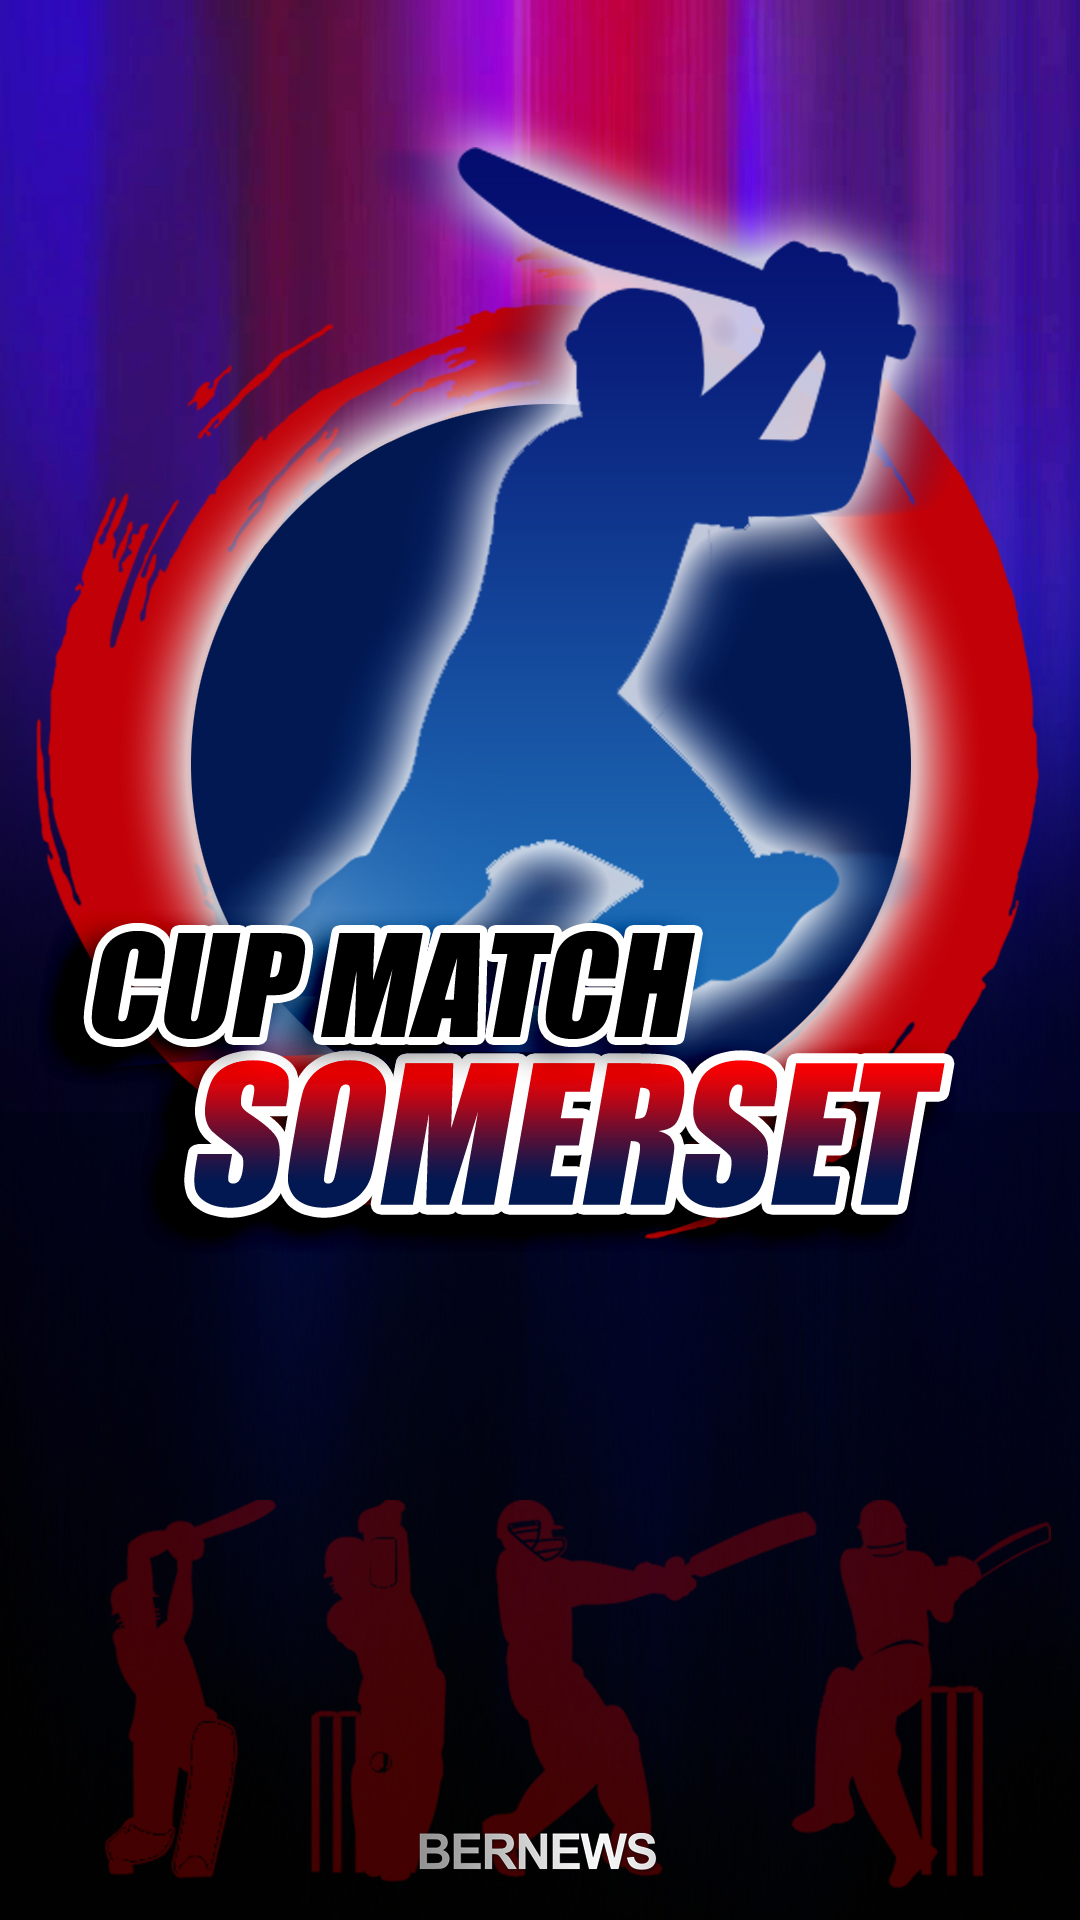 Bermuda free Cup Match iphone wallpaper graphics Somerset 345